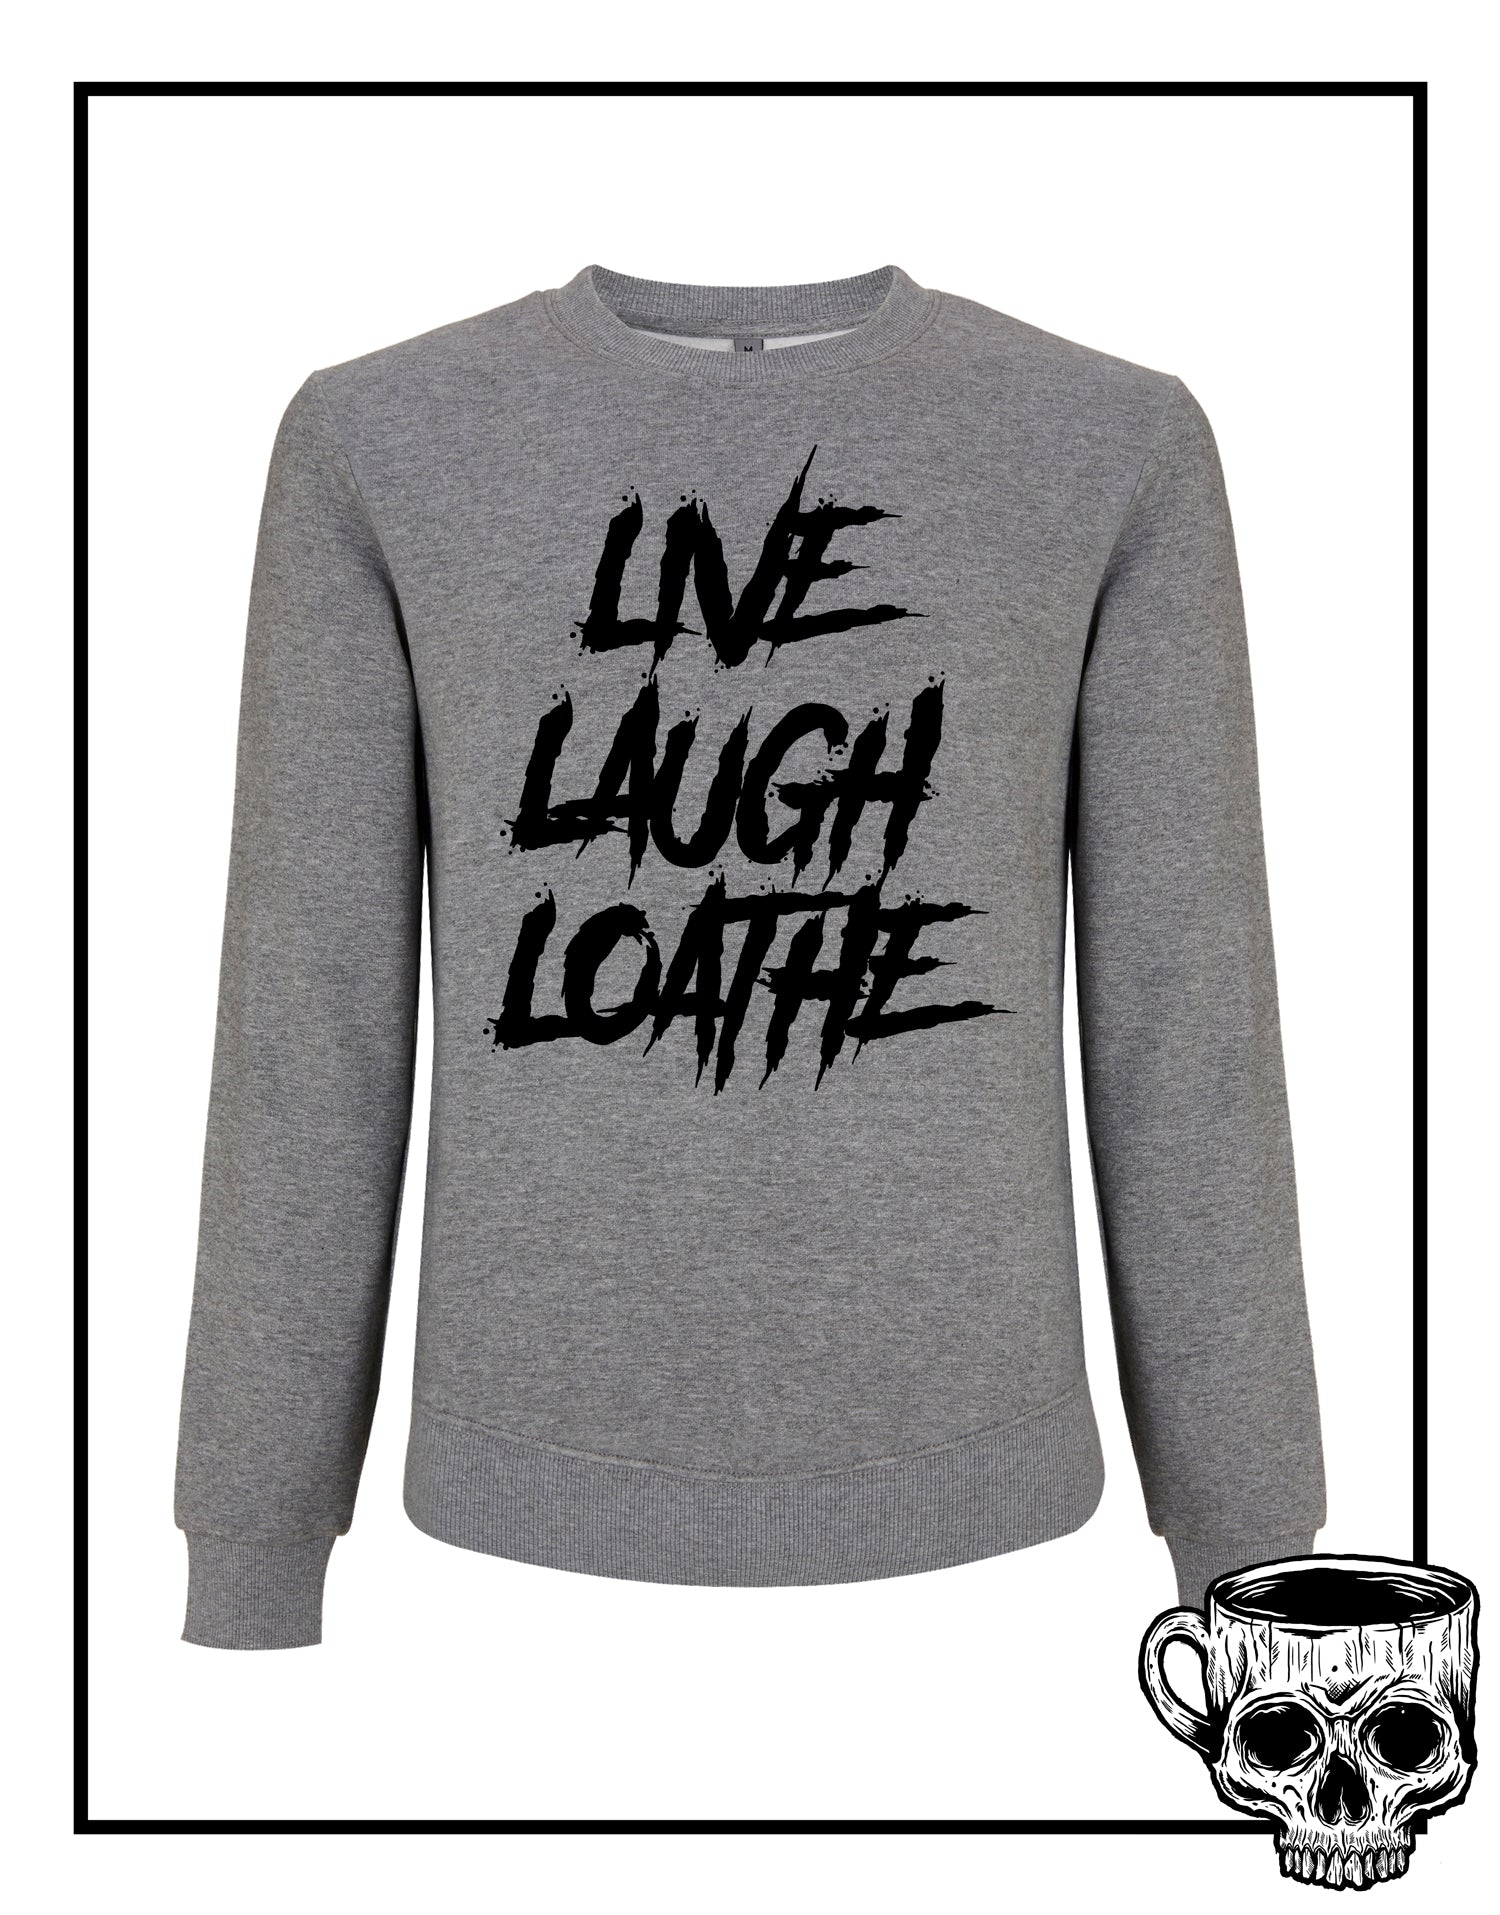 Live Laugh Loathe Sweatshirt - Burnt Coffee Clothing